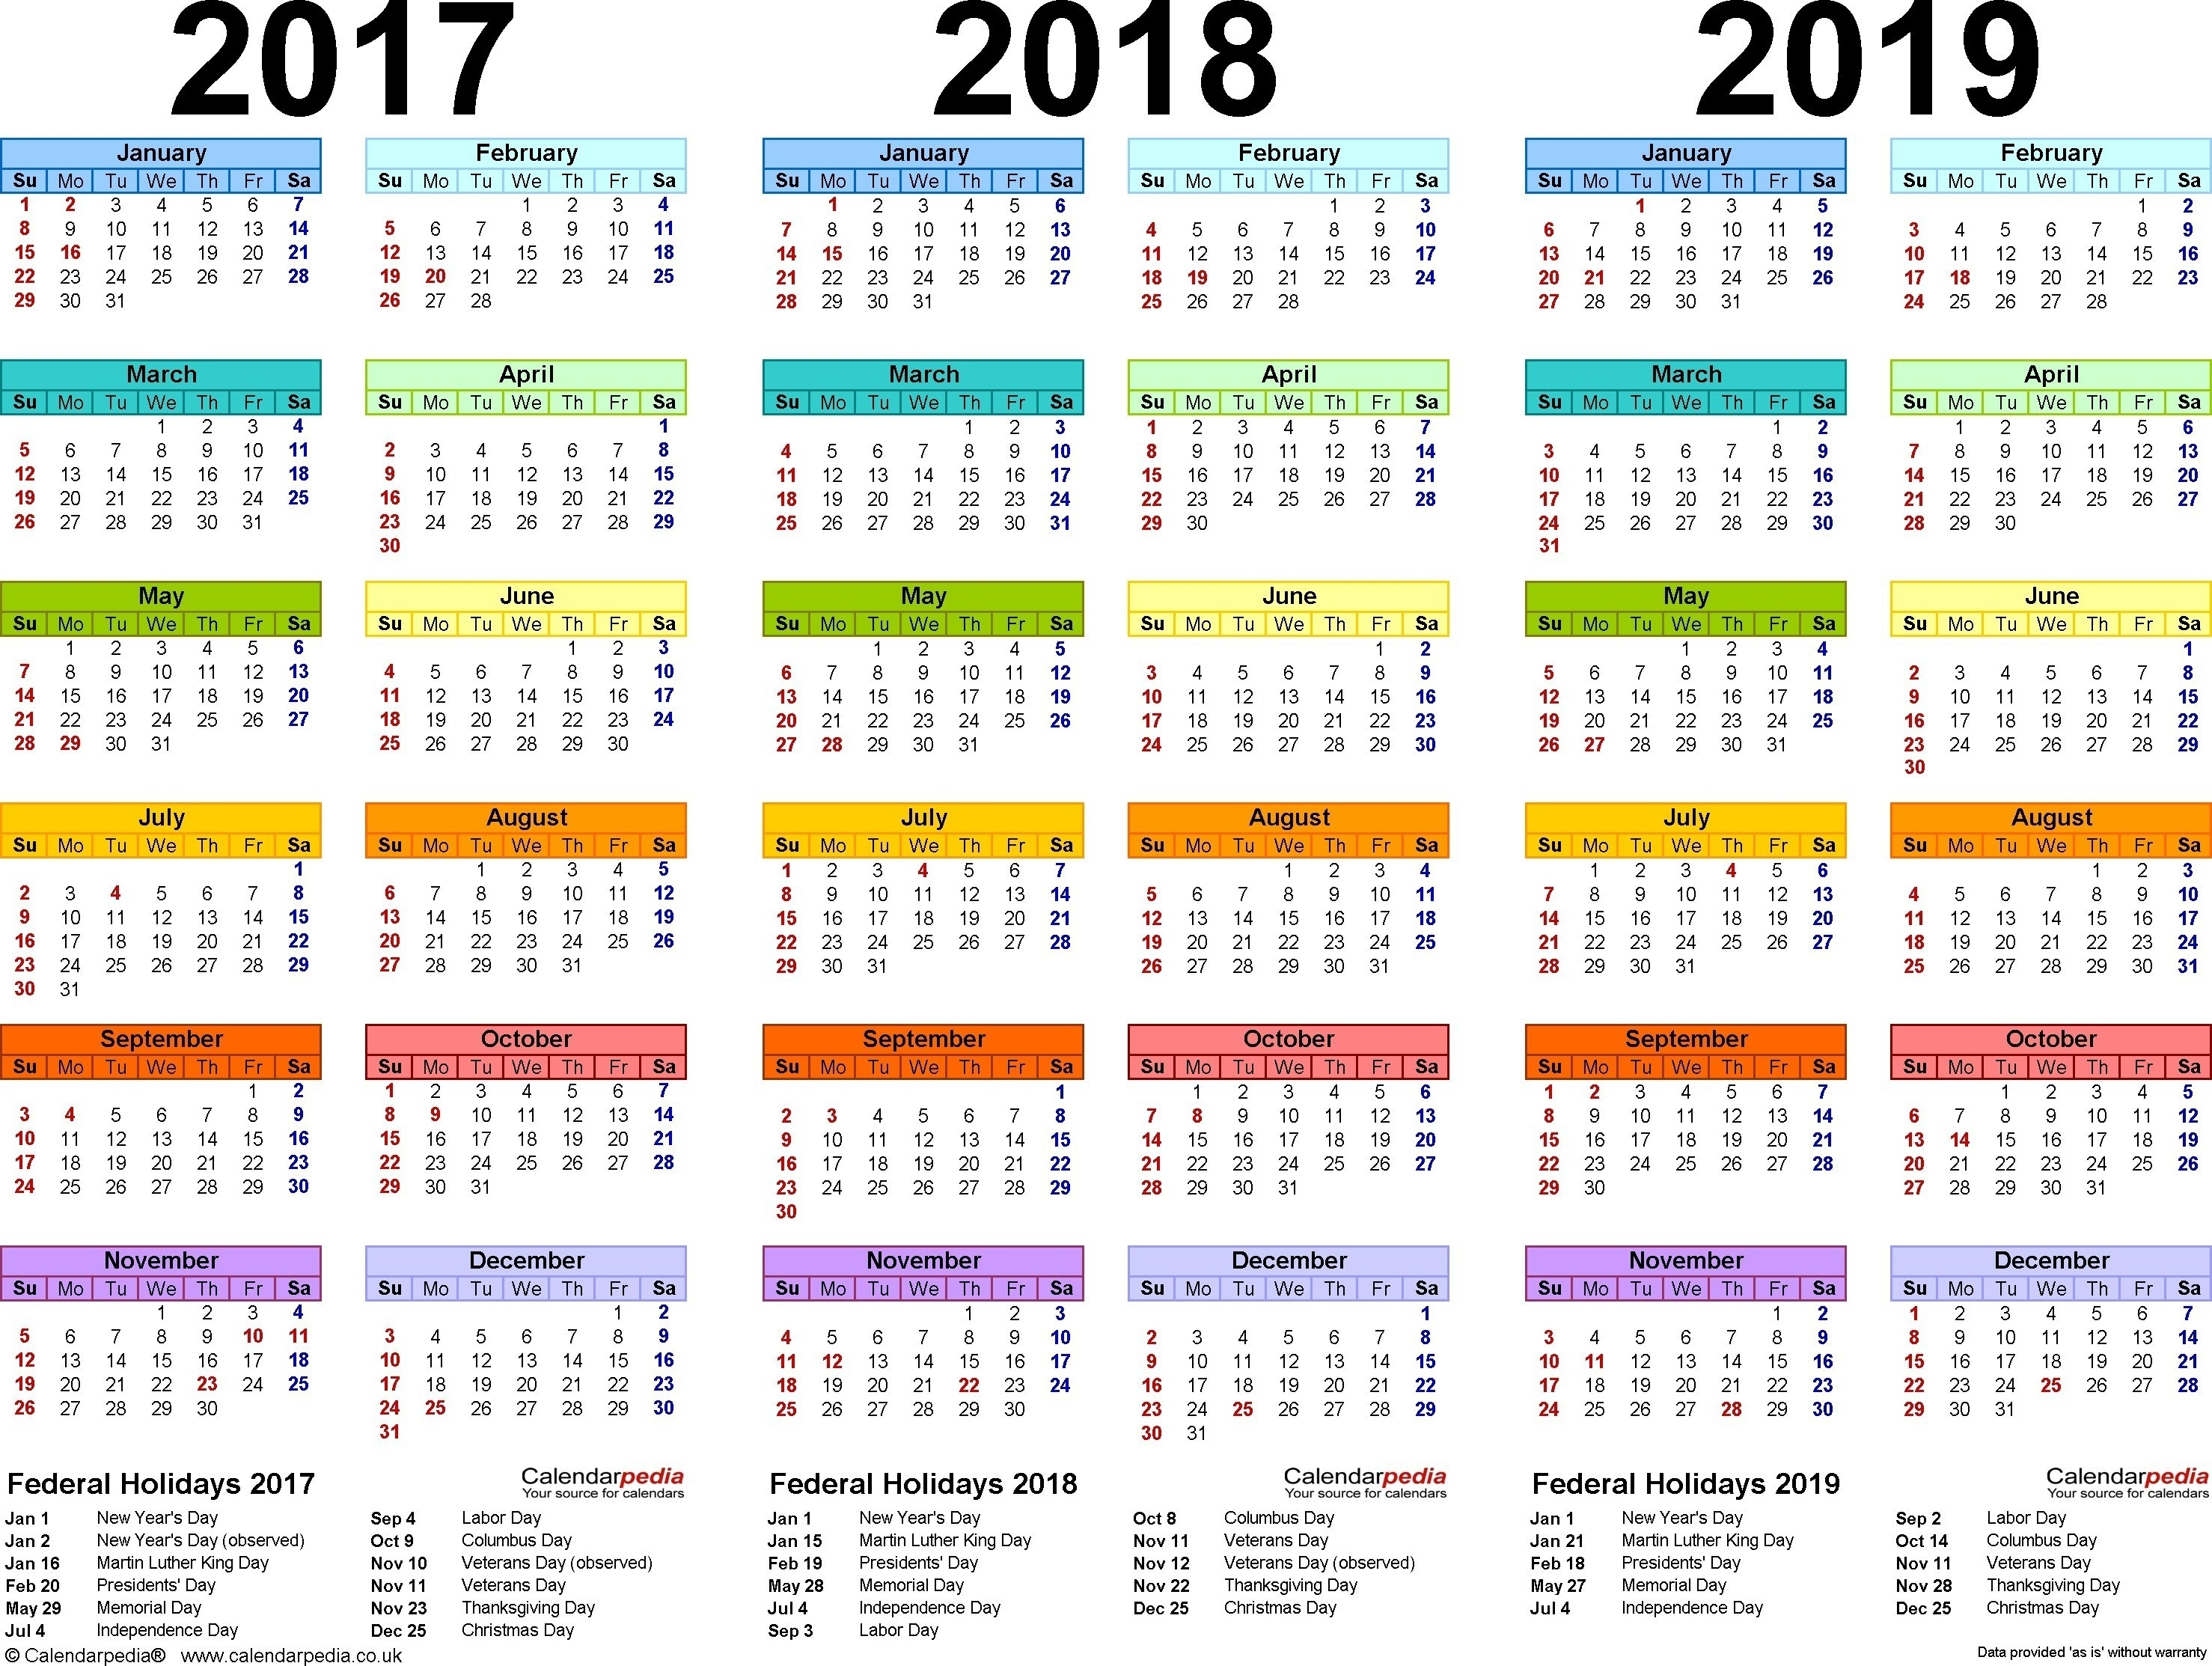 Depo Provera Calendar 2019 Printable Download For Free  Depo Calendar 2020 Printable